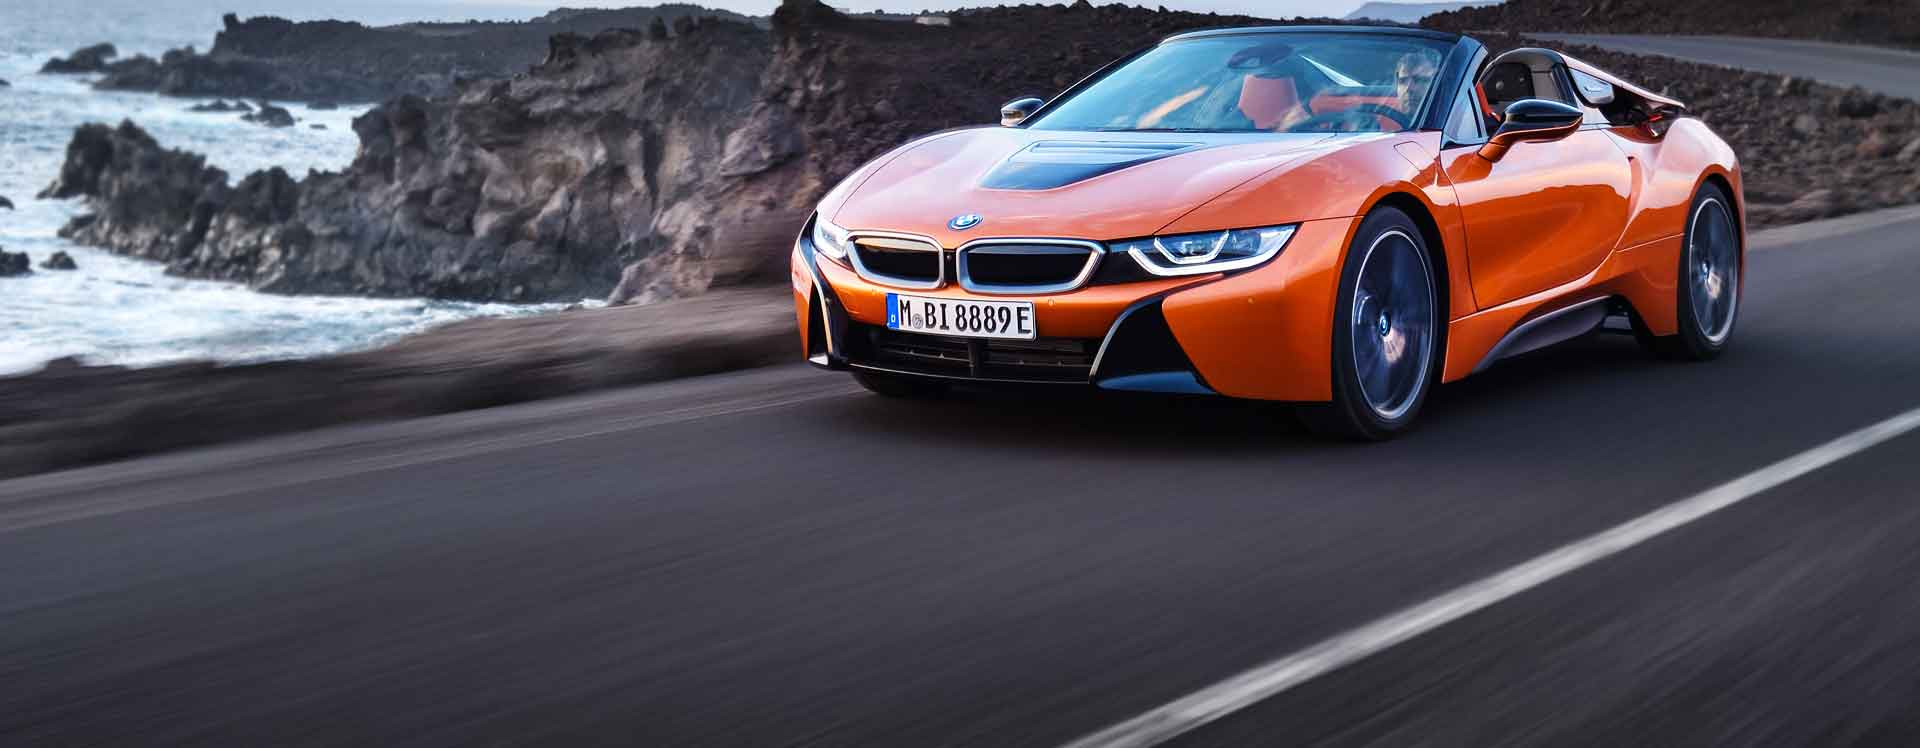 Bmw I8 Maintenance Cost And Schedule Guide